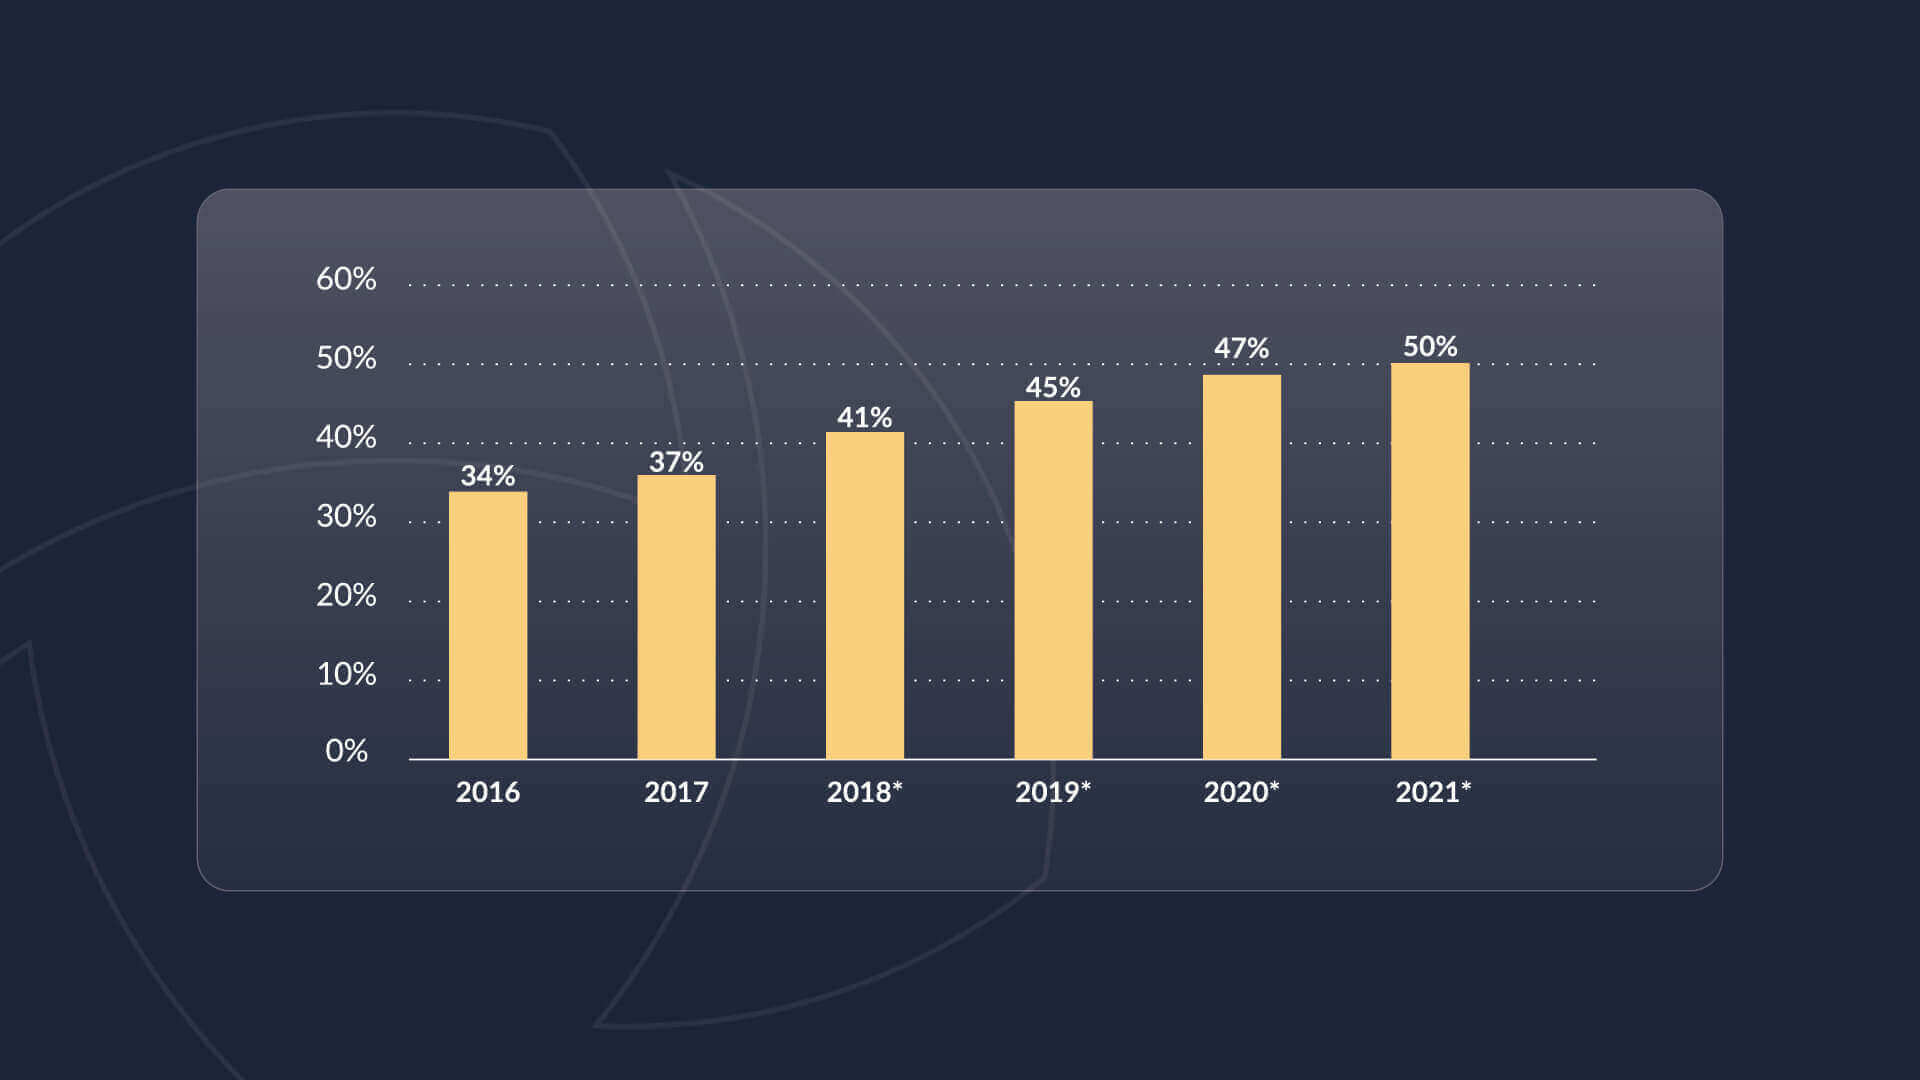 Graph showing the growing percentage of online sales conducted on Amazon, peaking at  50% in 2021.